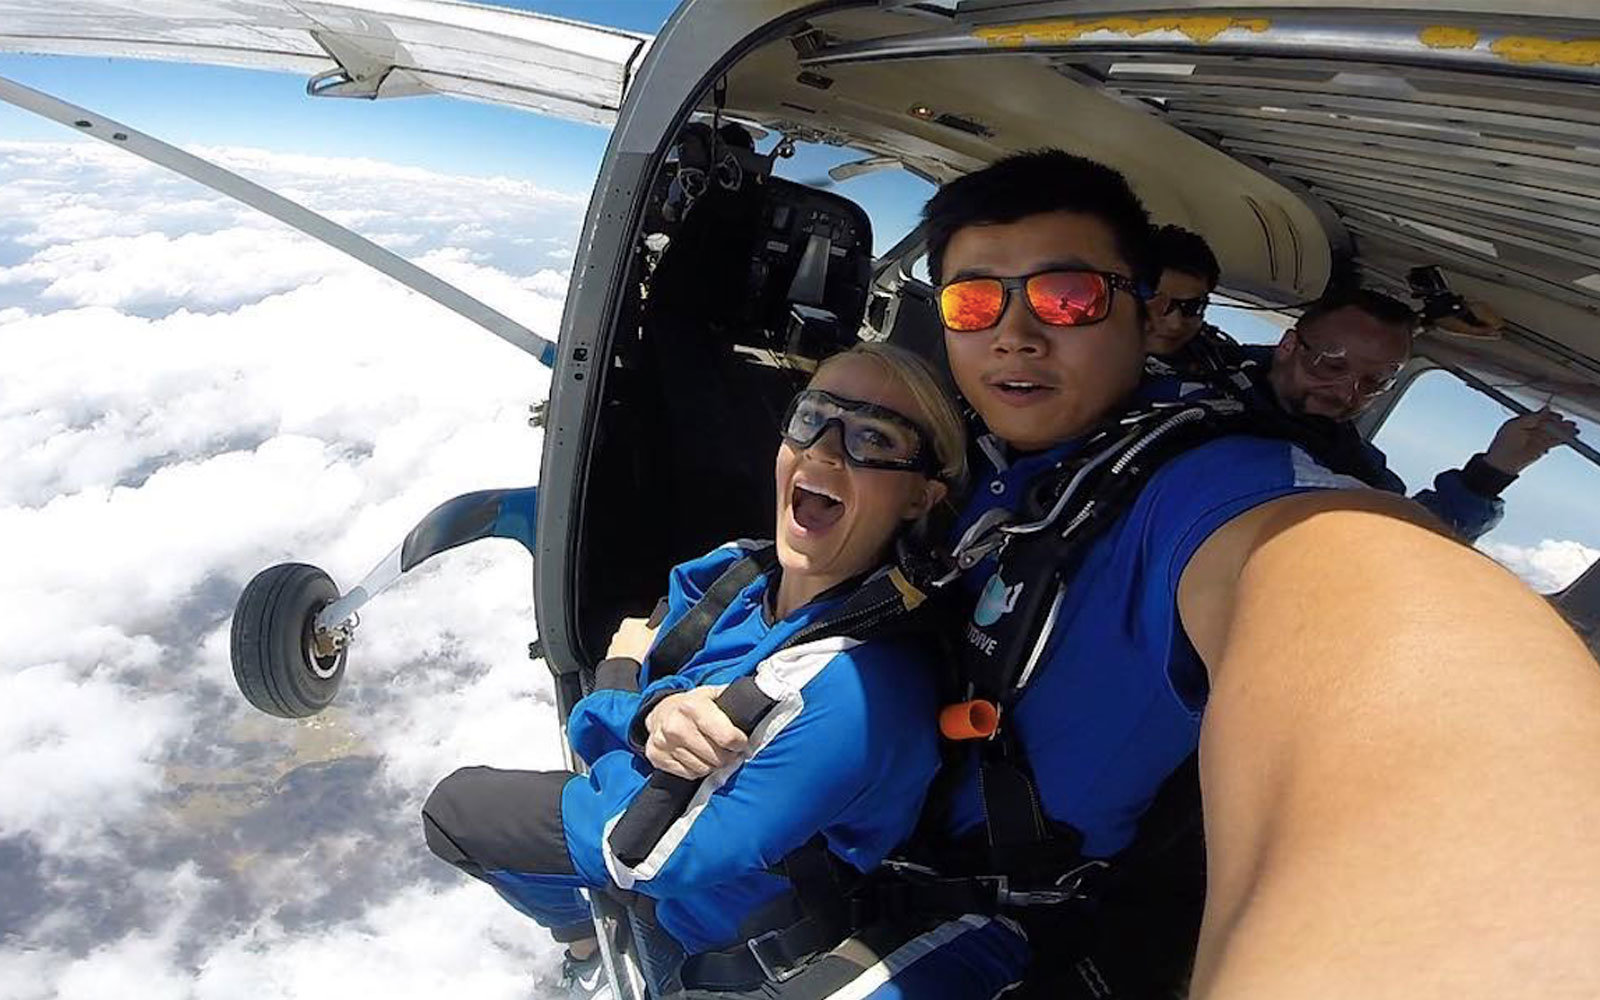 Carrie Underwood went skydiving on tour.